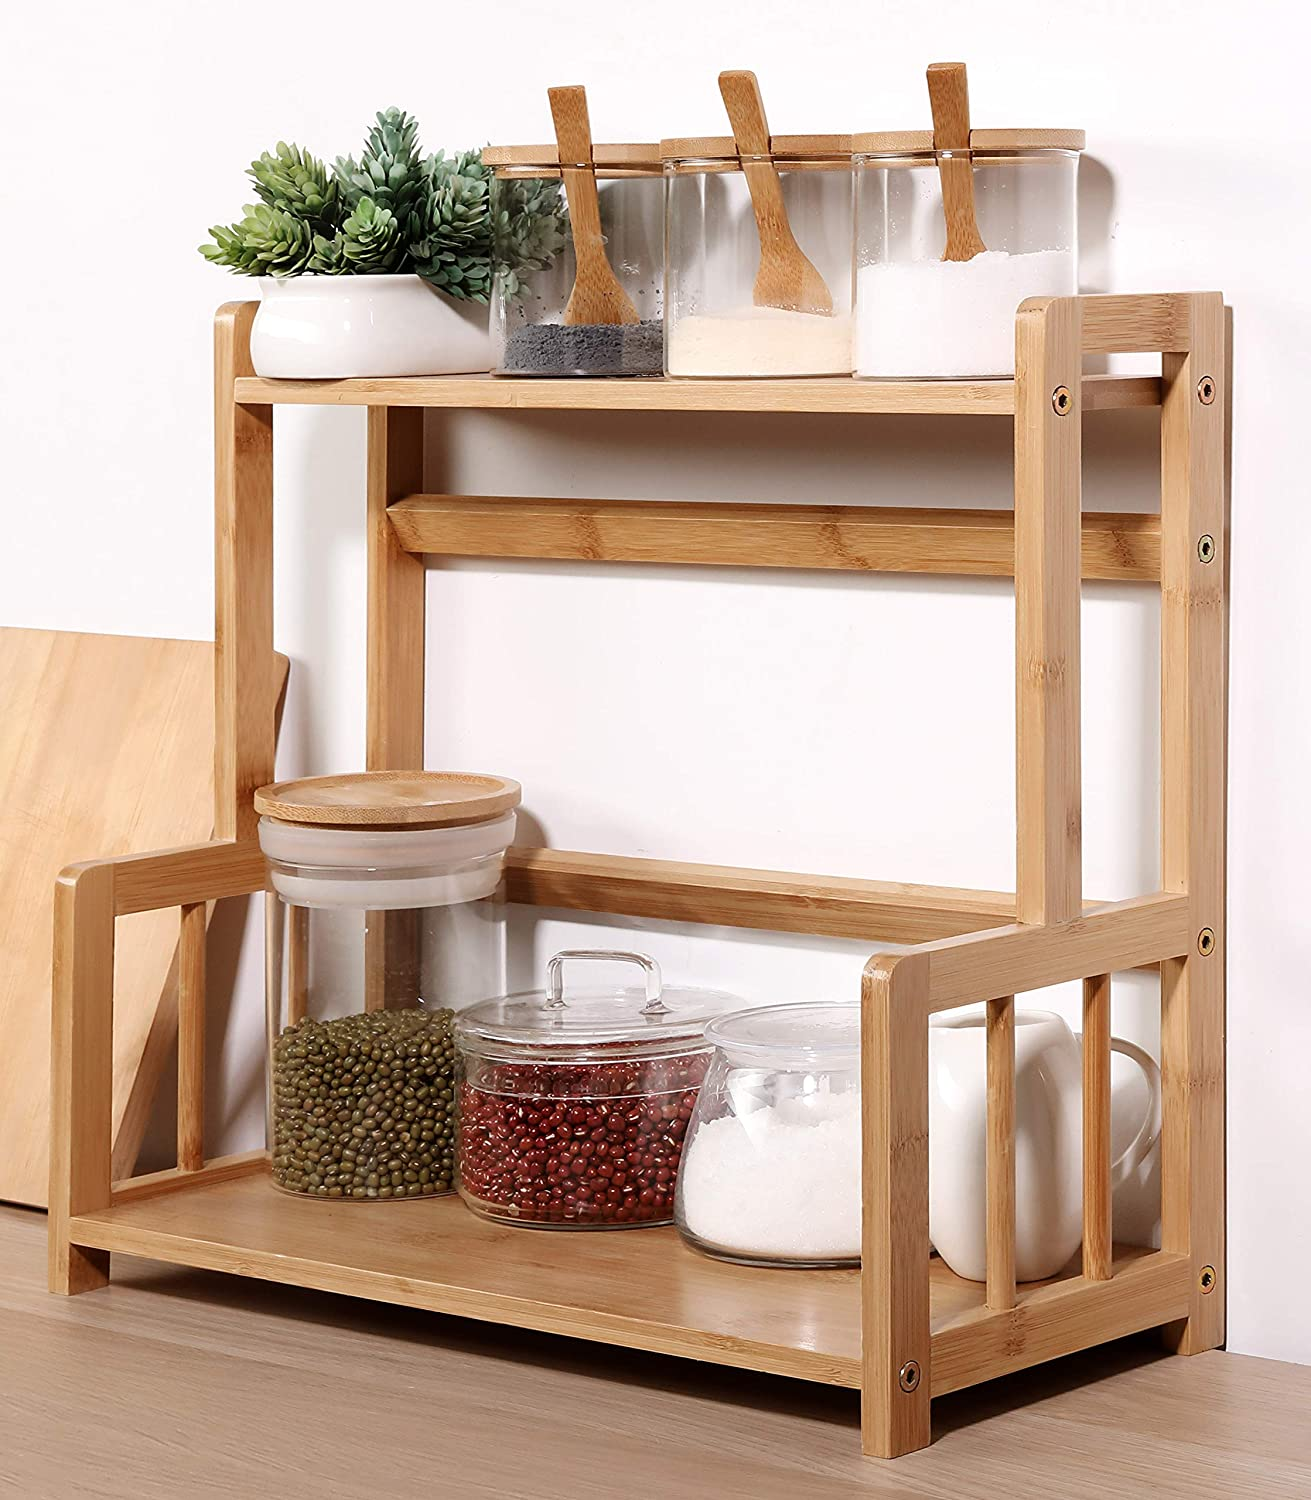 Bamboo Spice Rack Storage Shelves-2 Tier Kitchen Counter Shelf Standing Holder, Free StandingBathroom Accessories, plant stand Cosmetic Storage Display Shelf,Desk Bookshelf Office Supplies